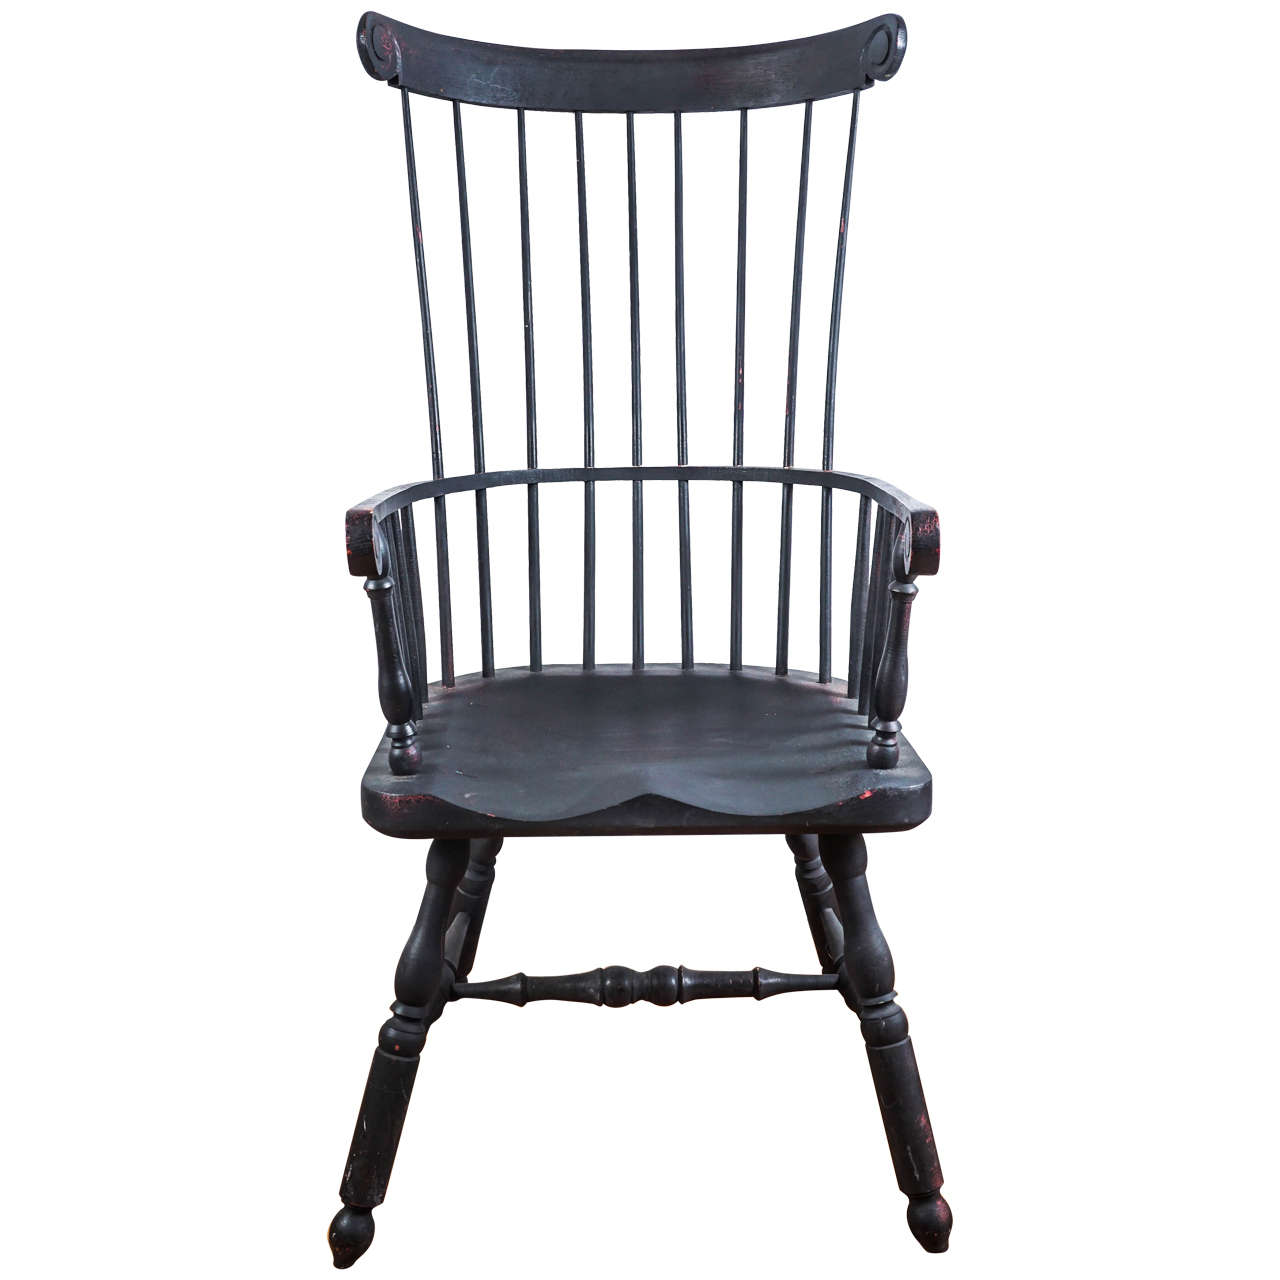 High-Back Windsor Chair For Sale - High-Back Windsor Chair At 1stdibs